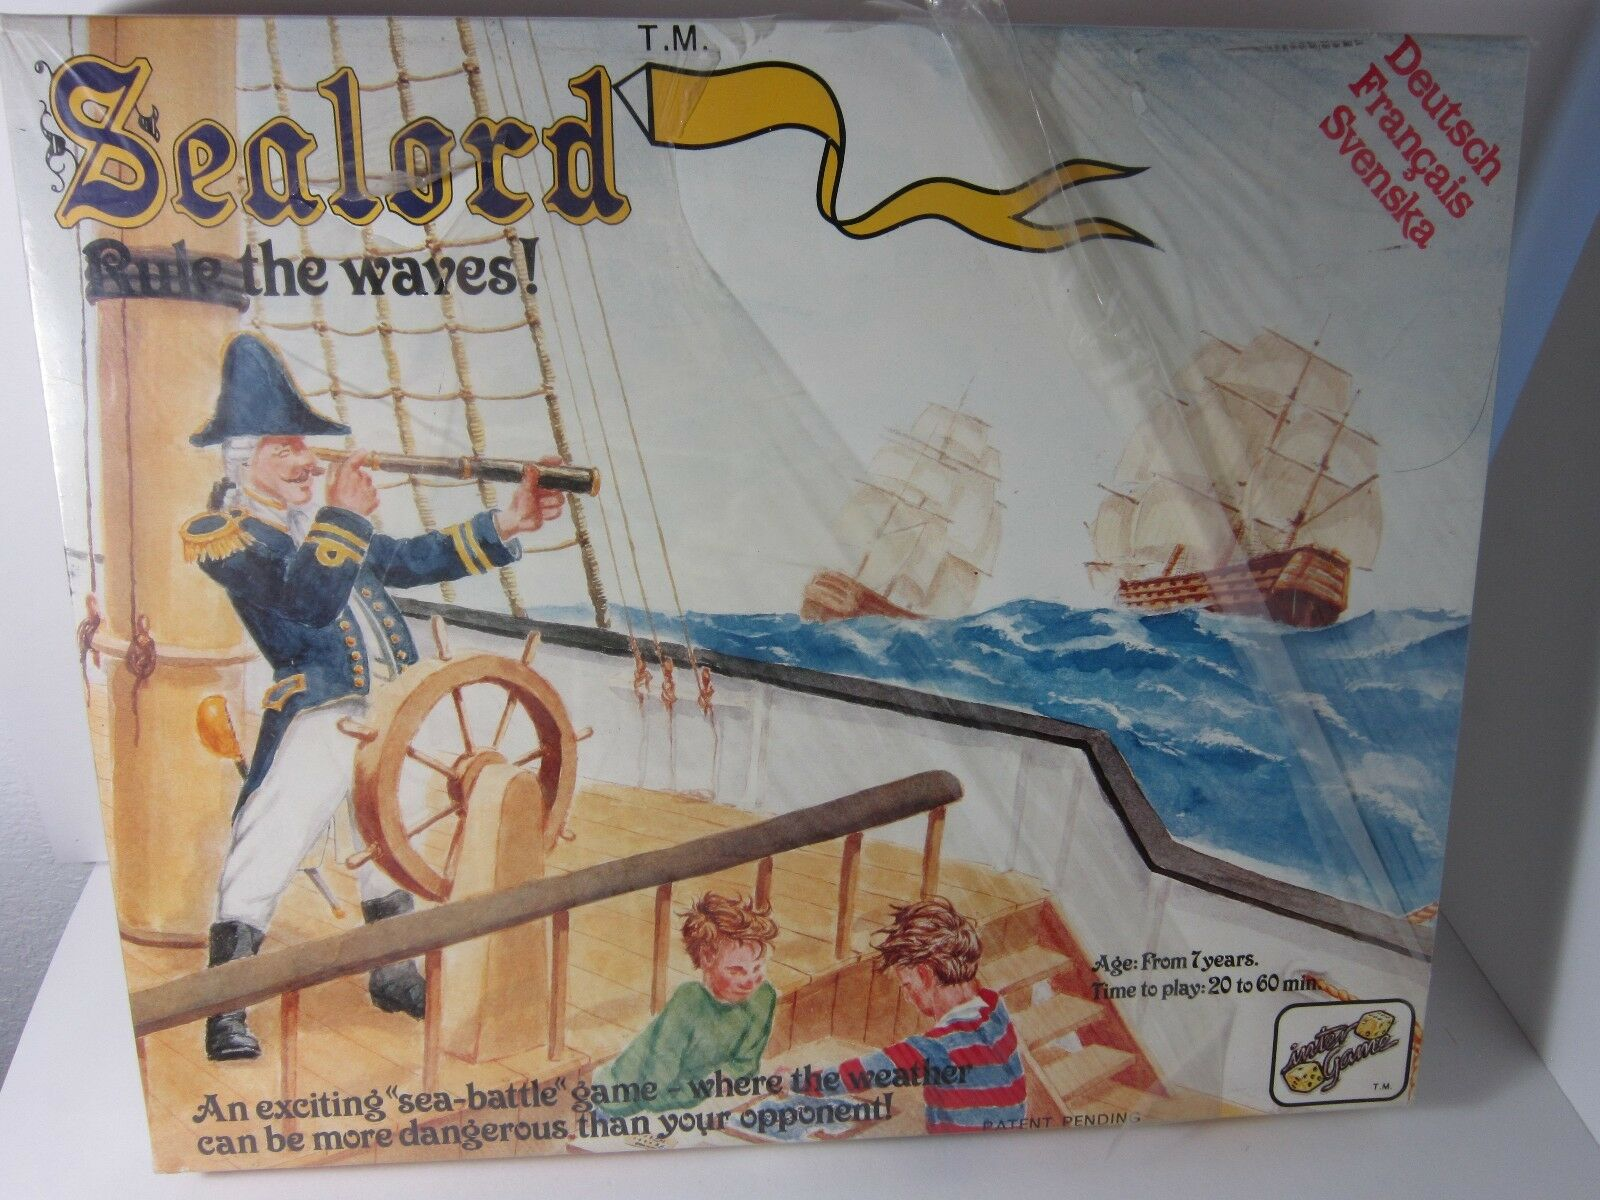 SeaLord Rule The Waves Vintage  Bored Game 1 st  Edition  by inter 1980